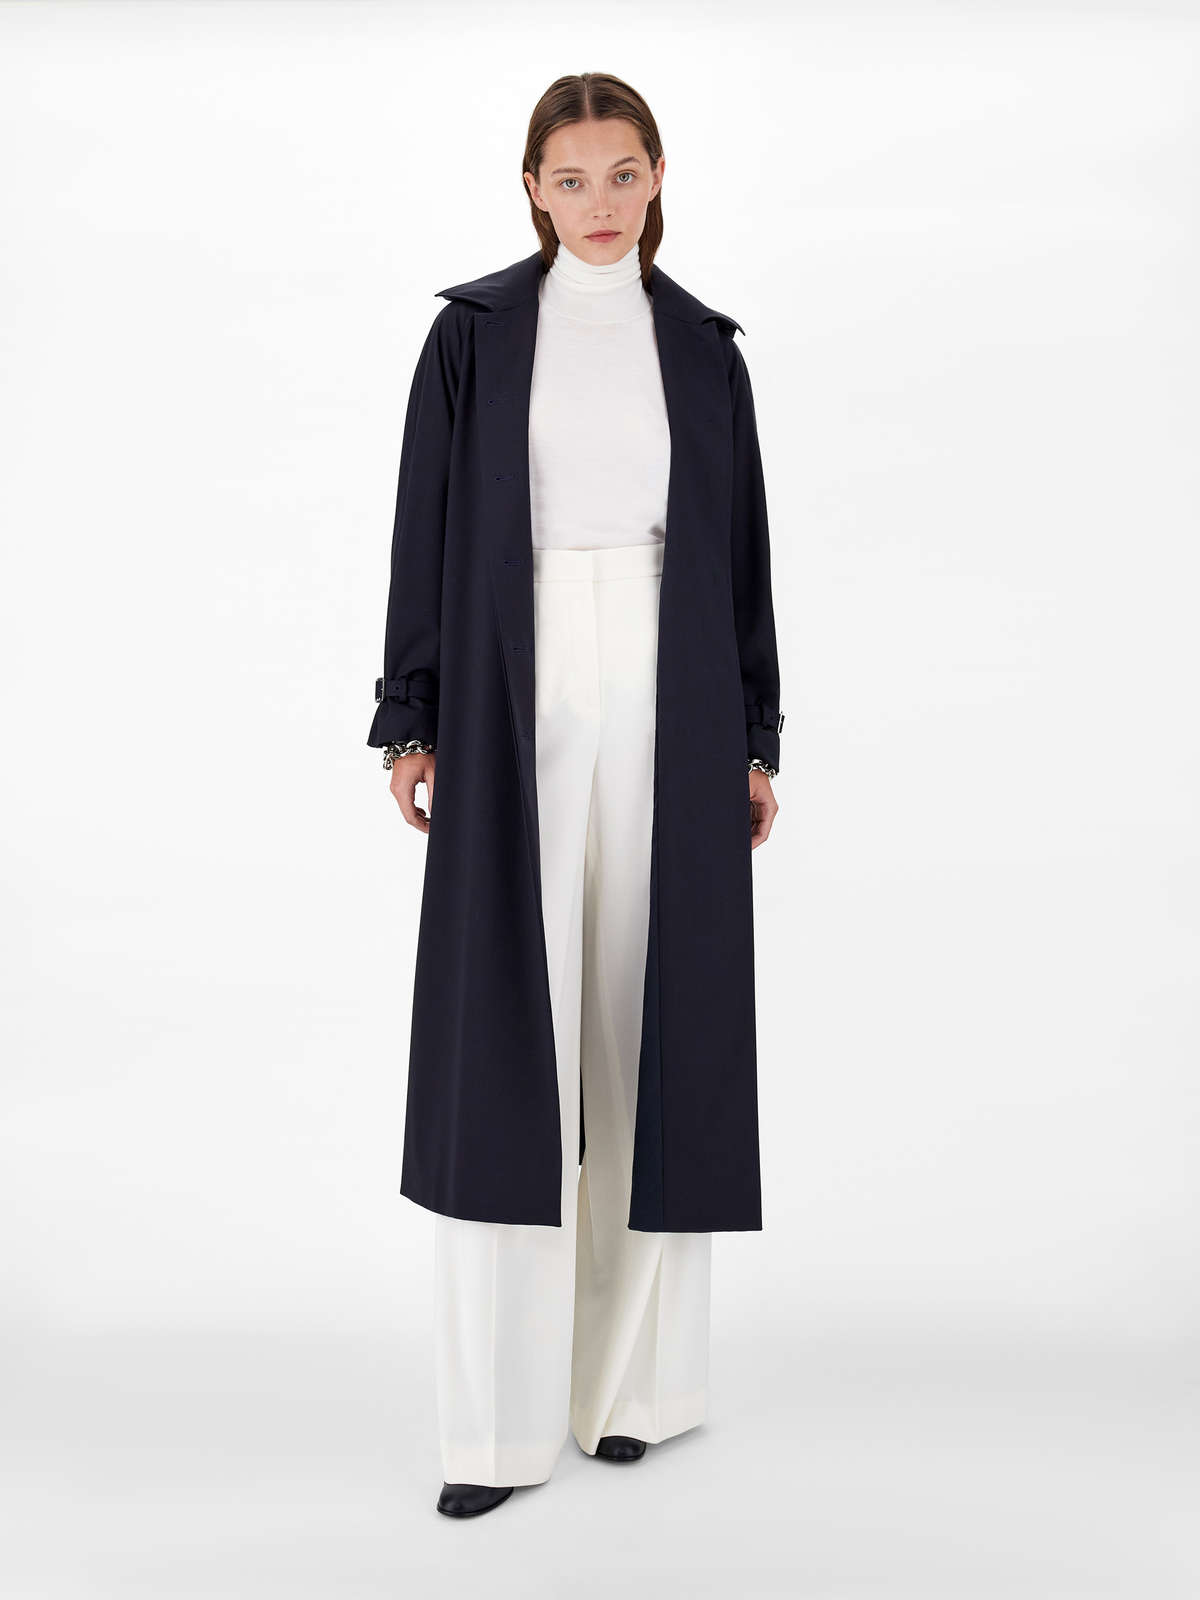 Waterproof trench coat in pure wool twill - Max Mara